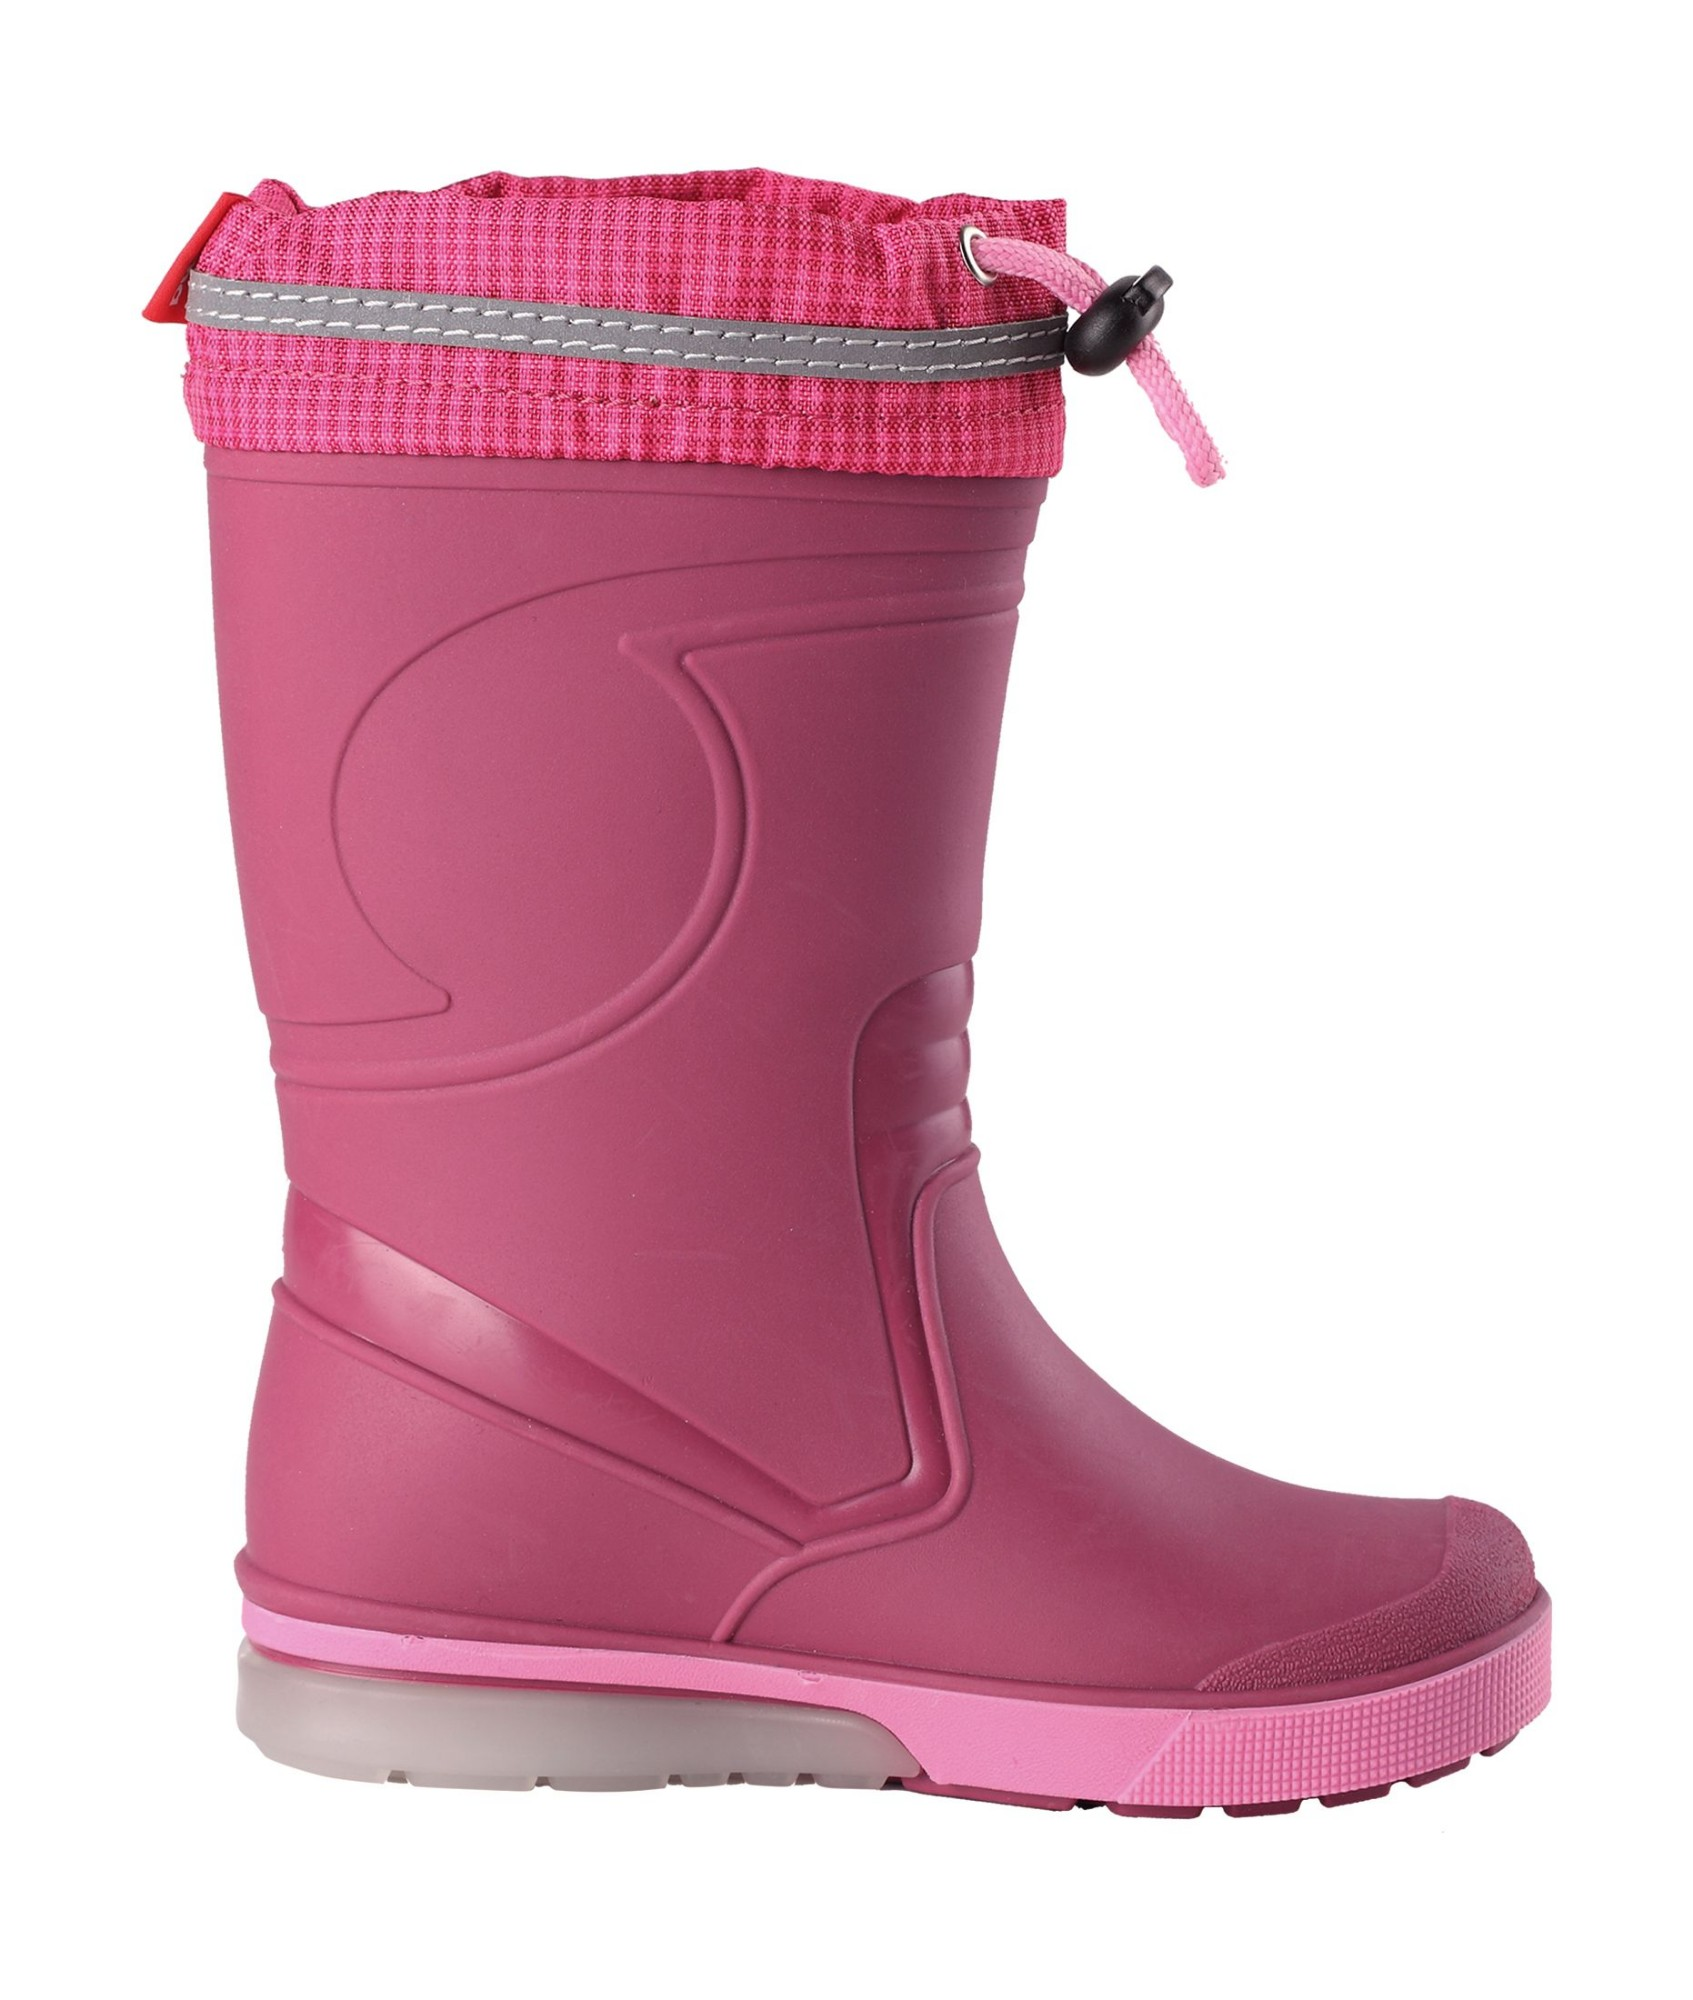 REIMA Twinkle Cranberry Pink 28